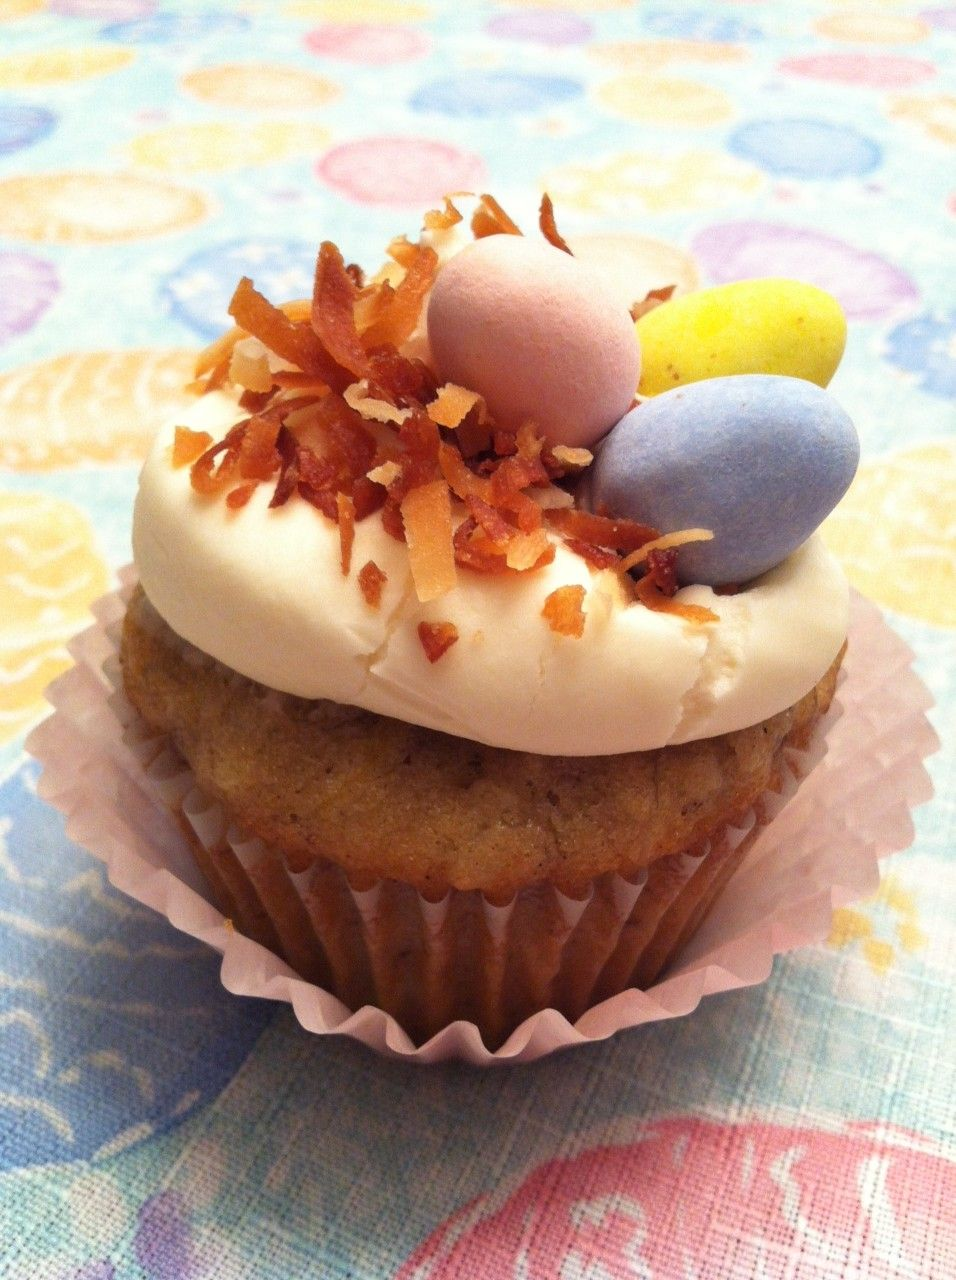 My friend Kristin's Hummingbird cupcakes that she made for